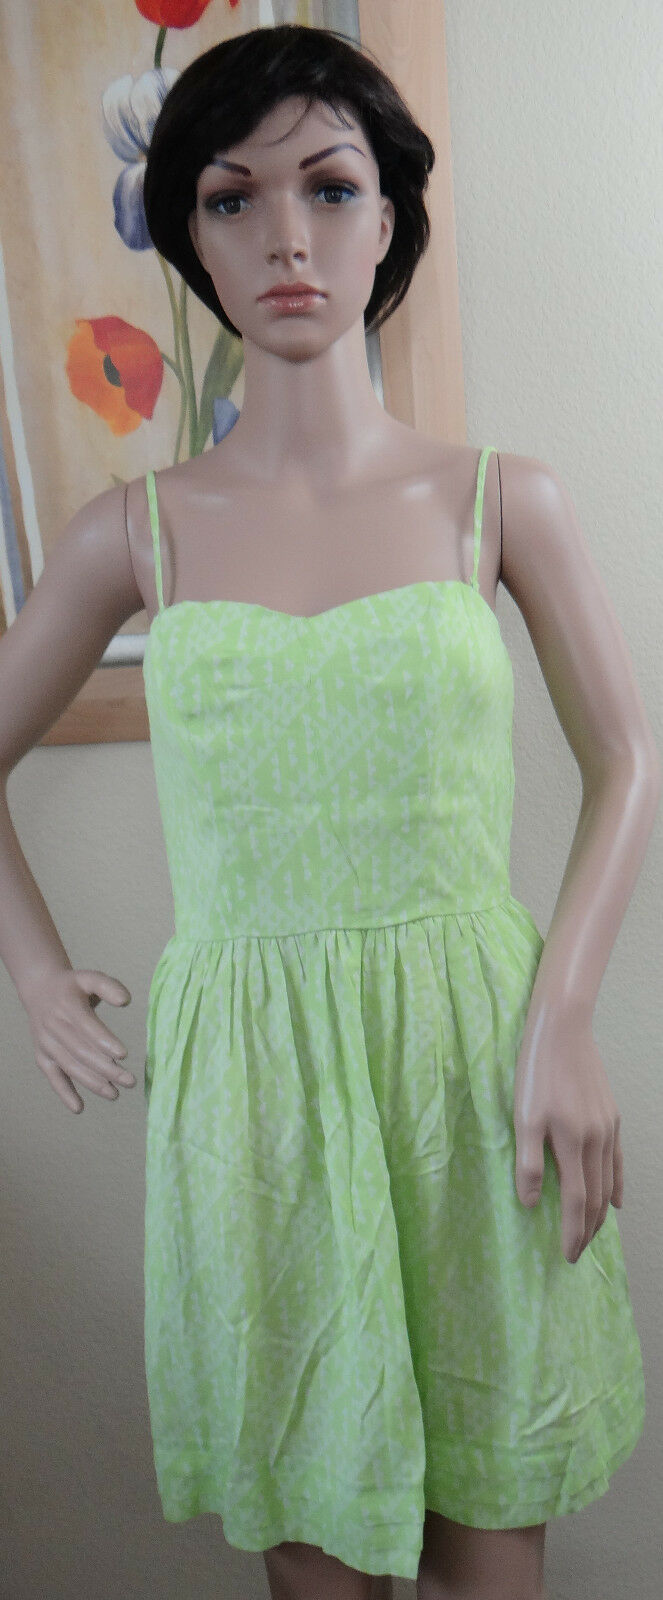 598299dfcf2 NWOT Genuine GREYLIN green strap or strapless corset like top S